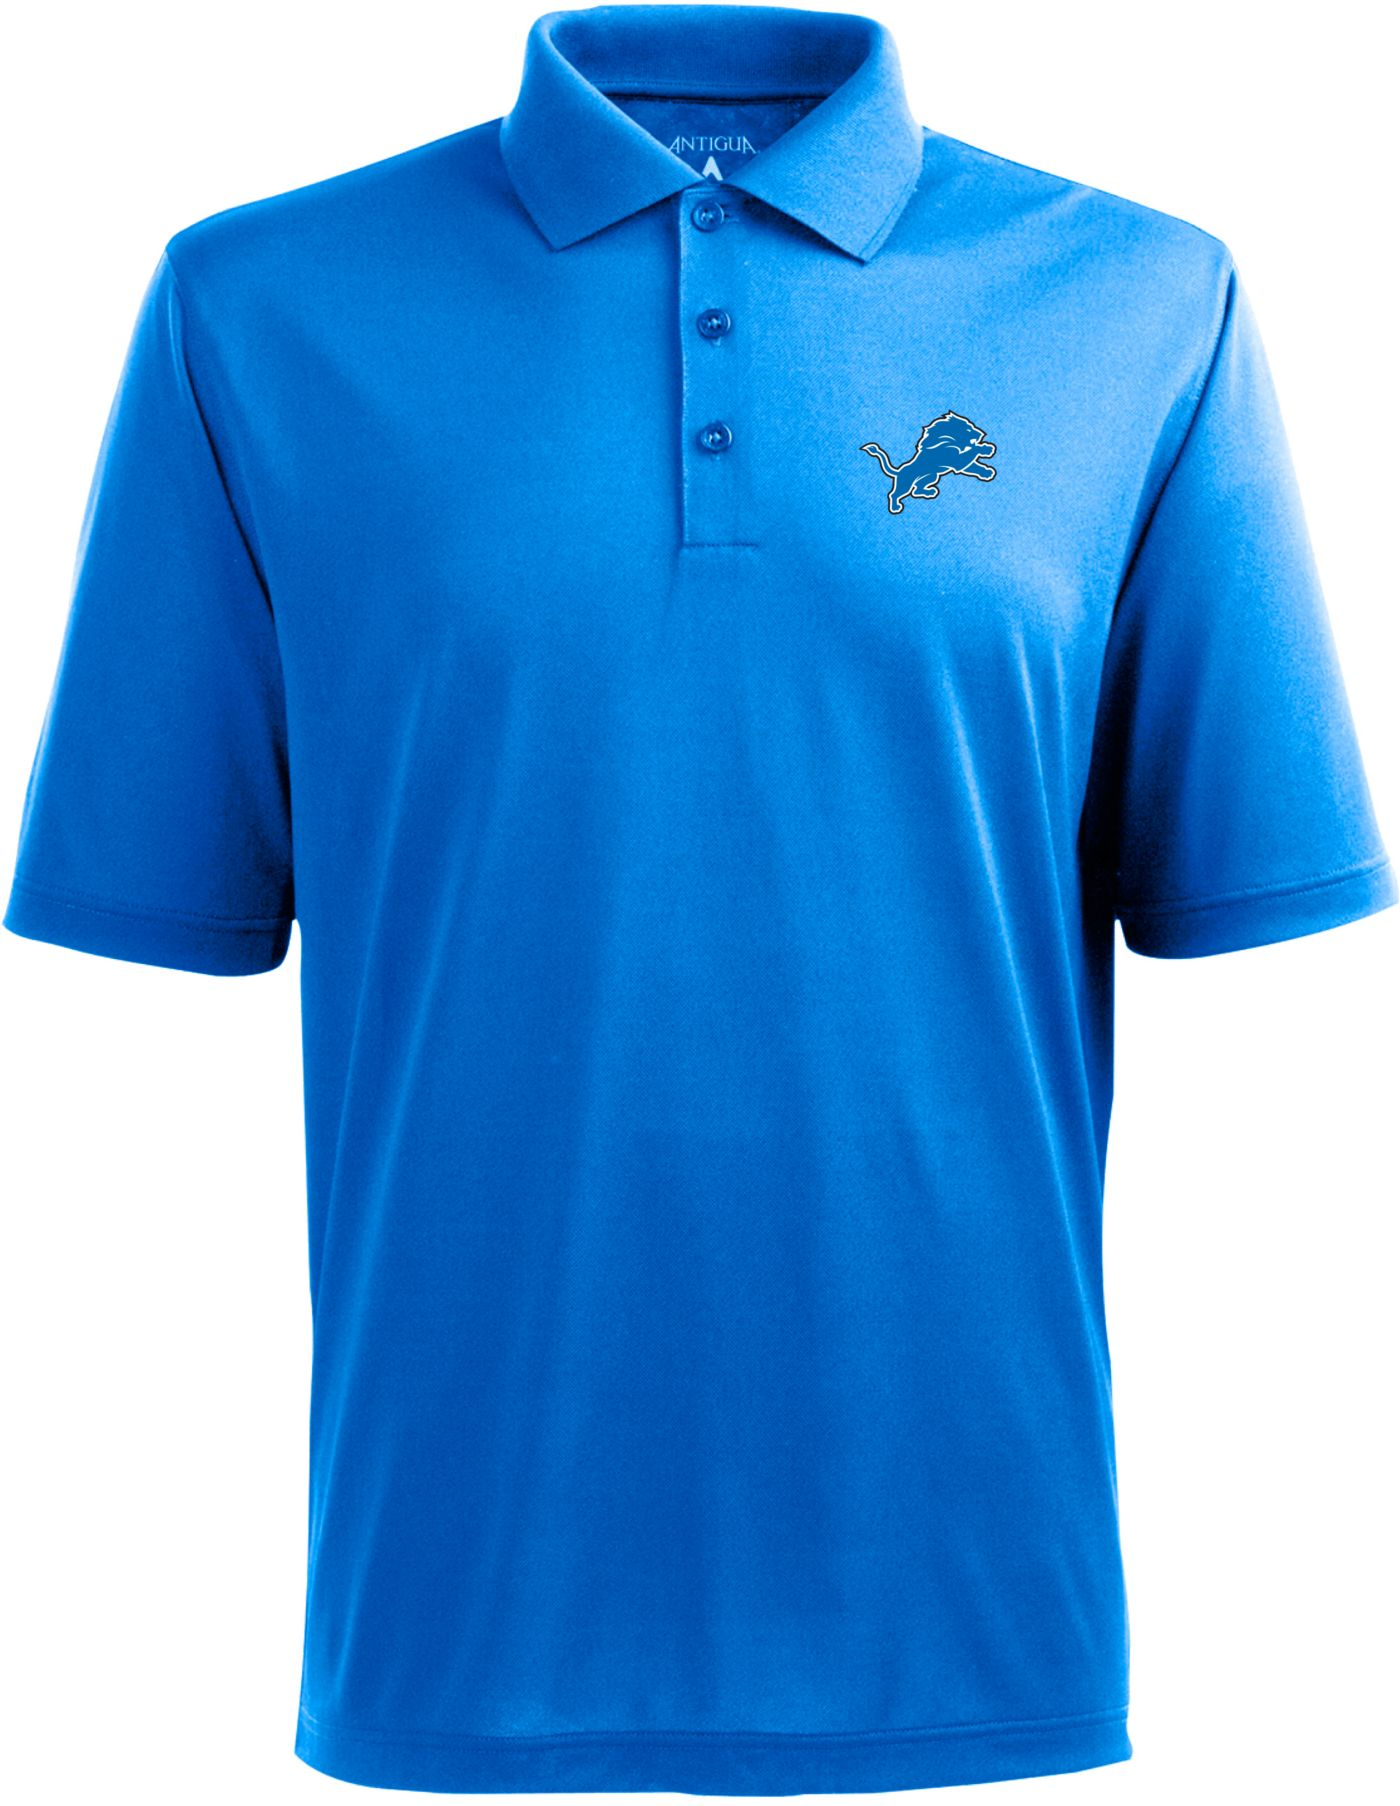 Antigua Men's Detroit Lions Pique Xtra-Lite Blue Polo